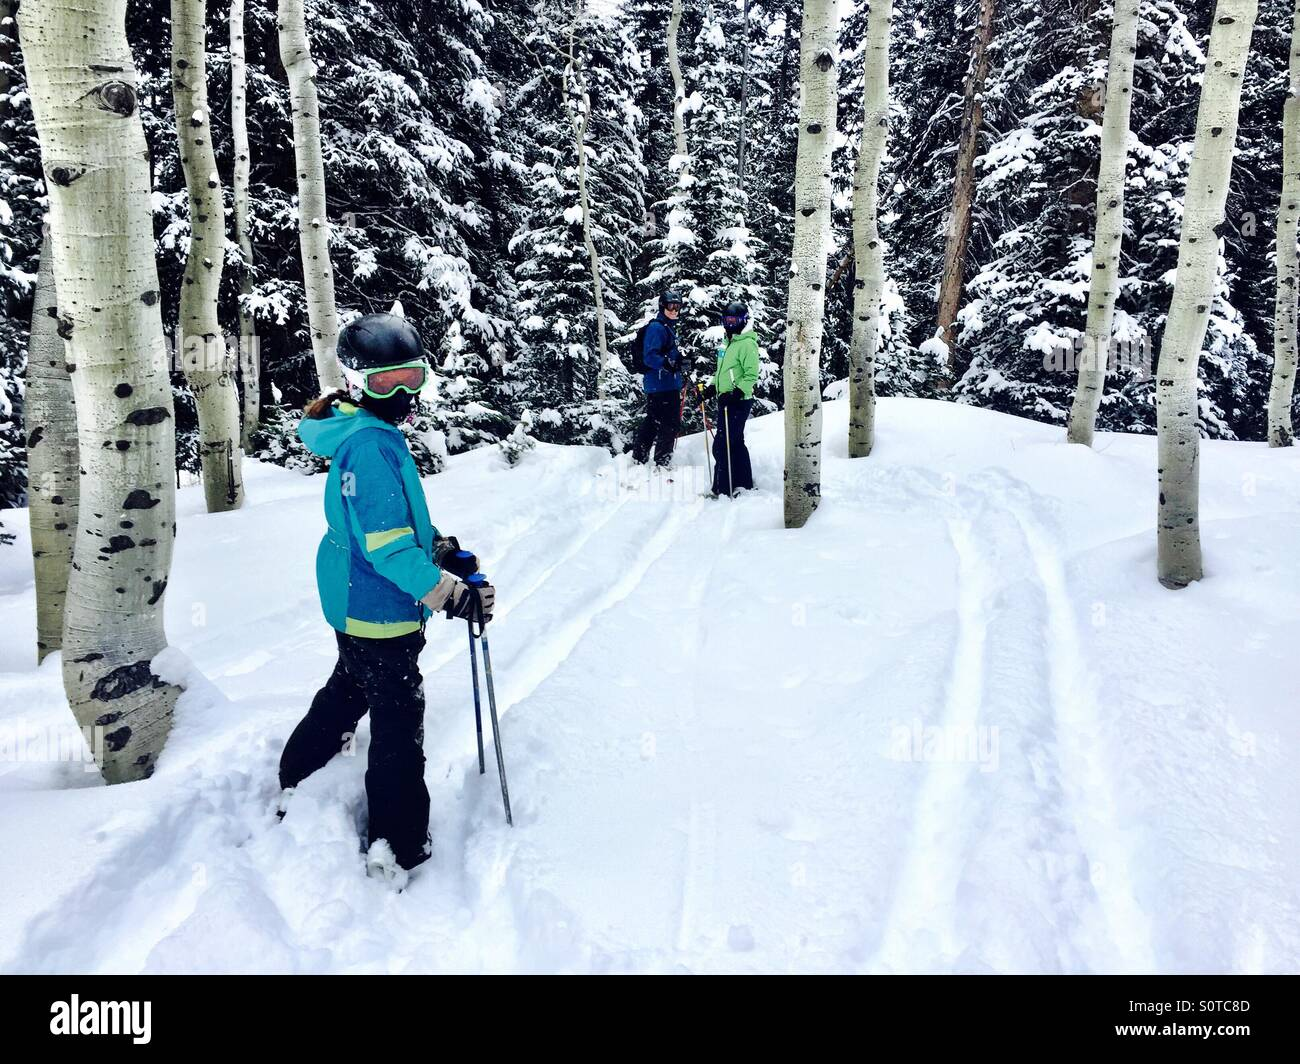 3 family members in ski gear prepare to ski through and Aspen Grove. - Stock Image